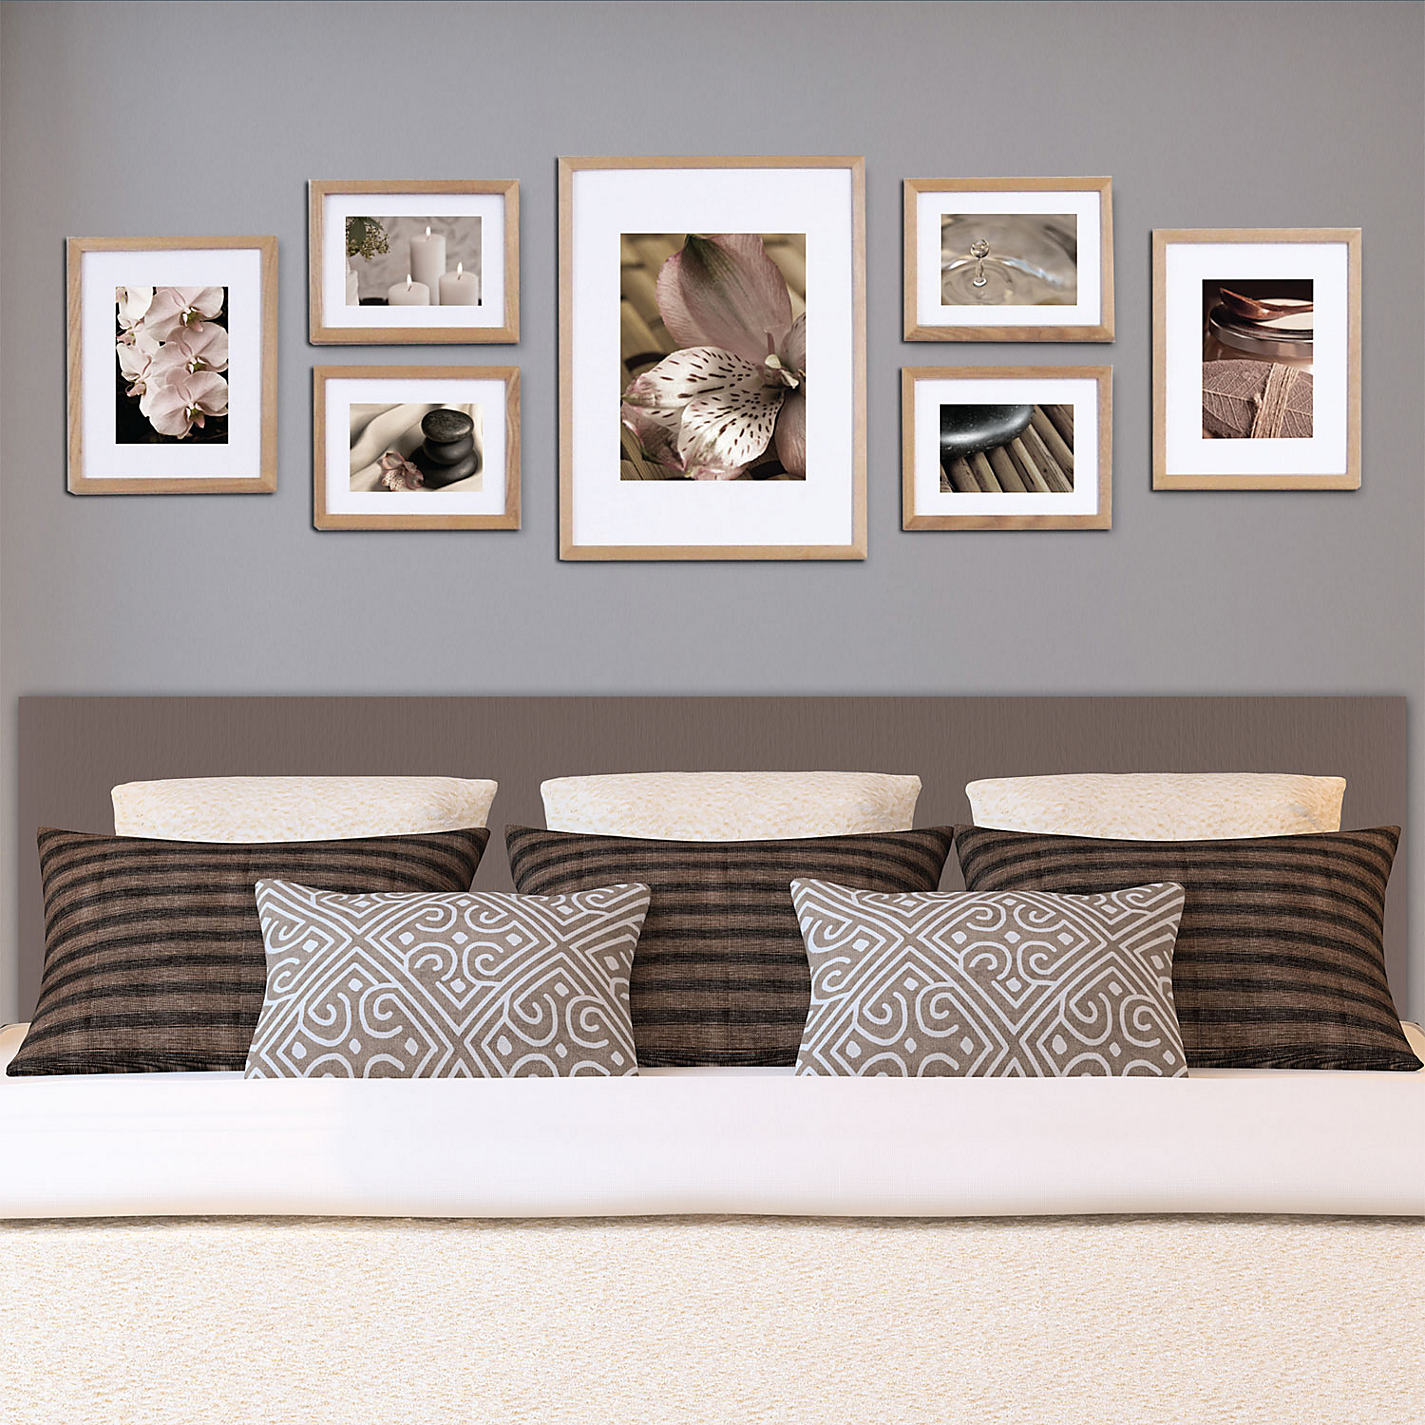 Buy gallery perfect frame set john lewis buy gallery perfect frame set online at johnlewis jeuxipadfo Image collections